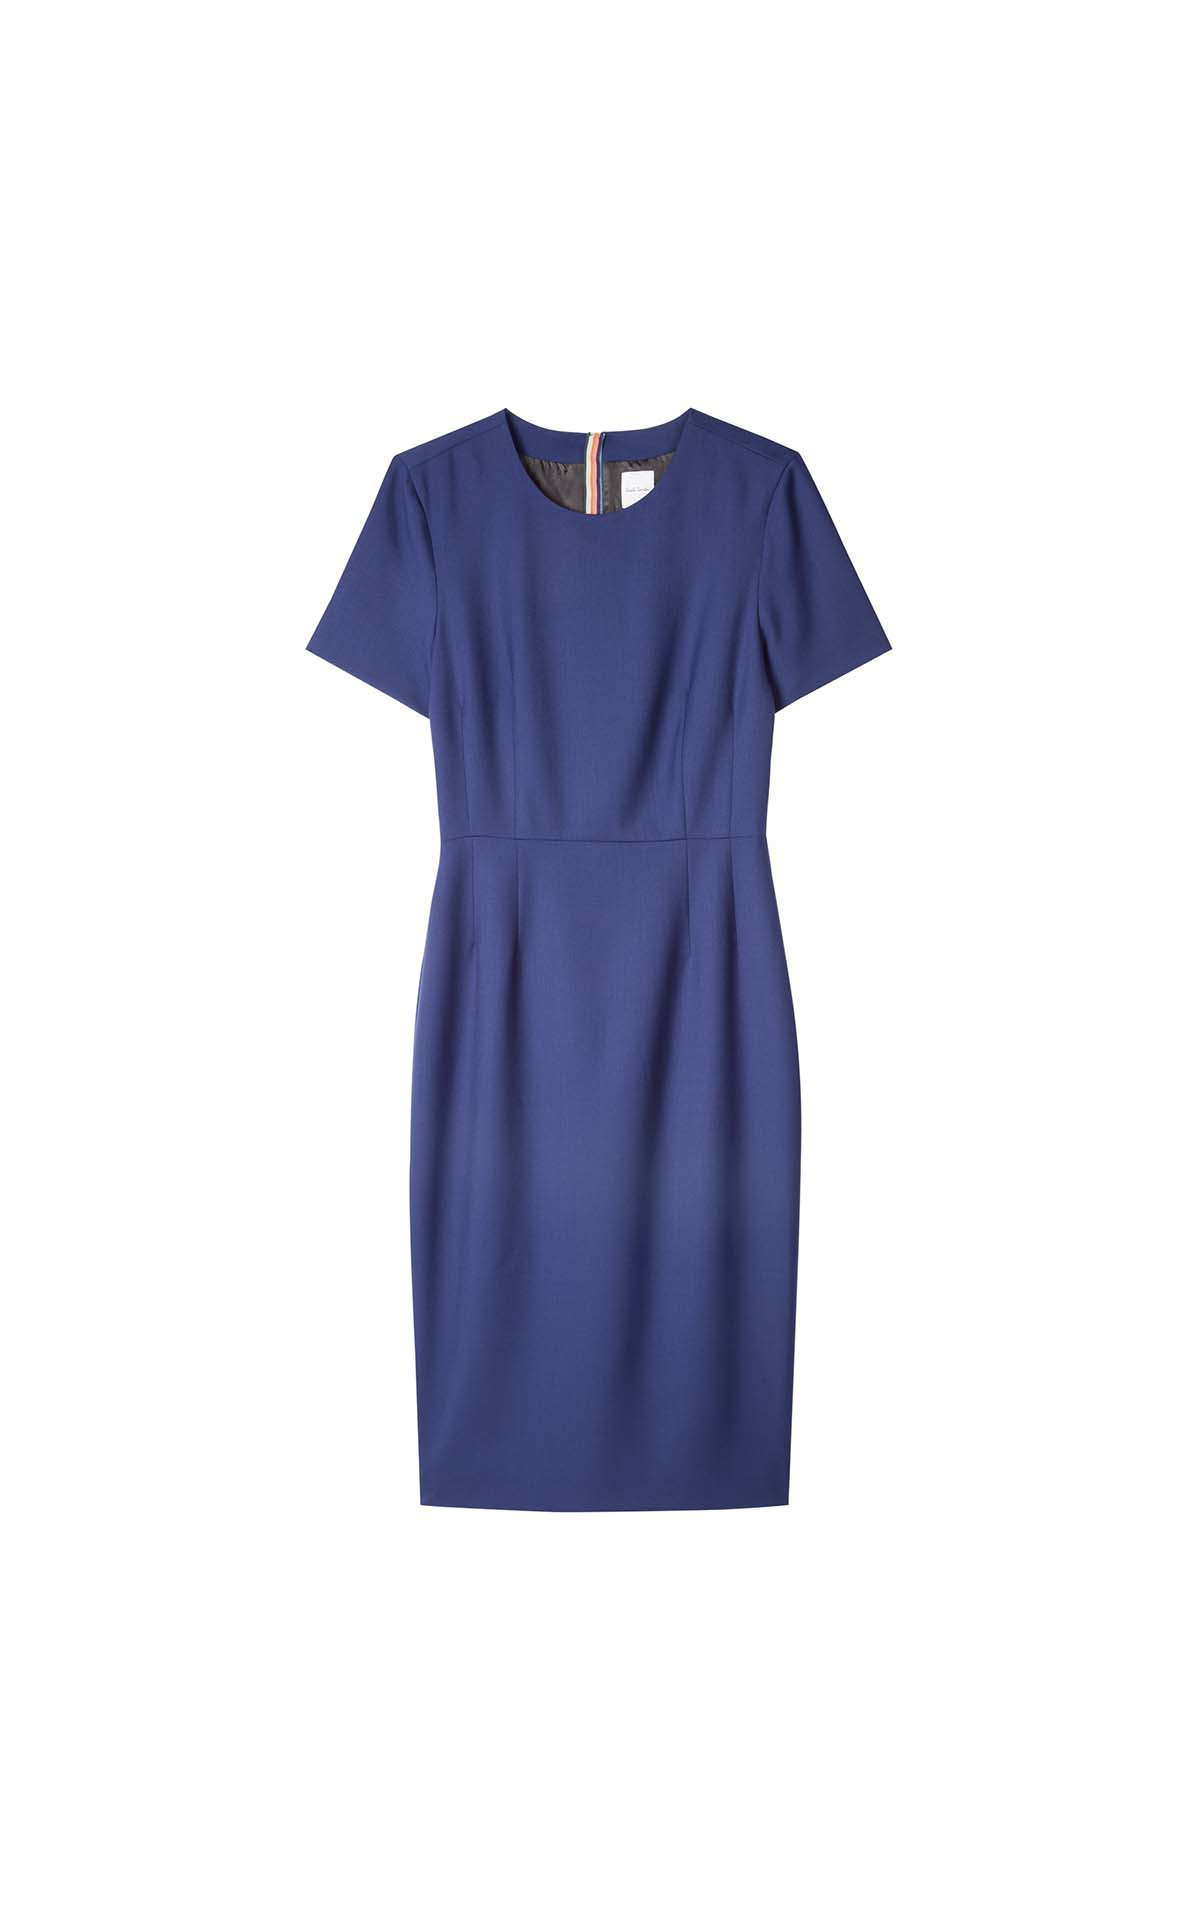 Paul Smith Women's navy dress at The Bicester Village Shopping Collection